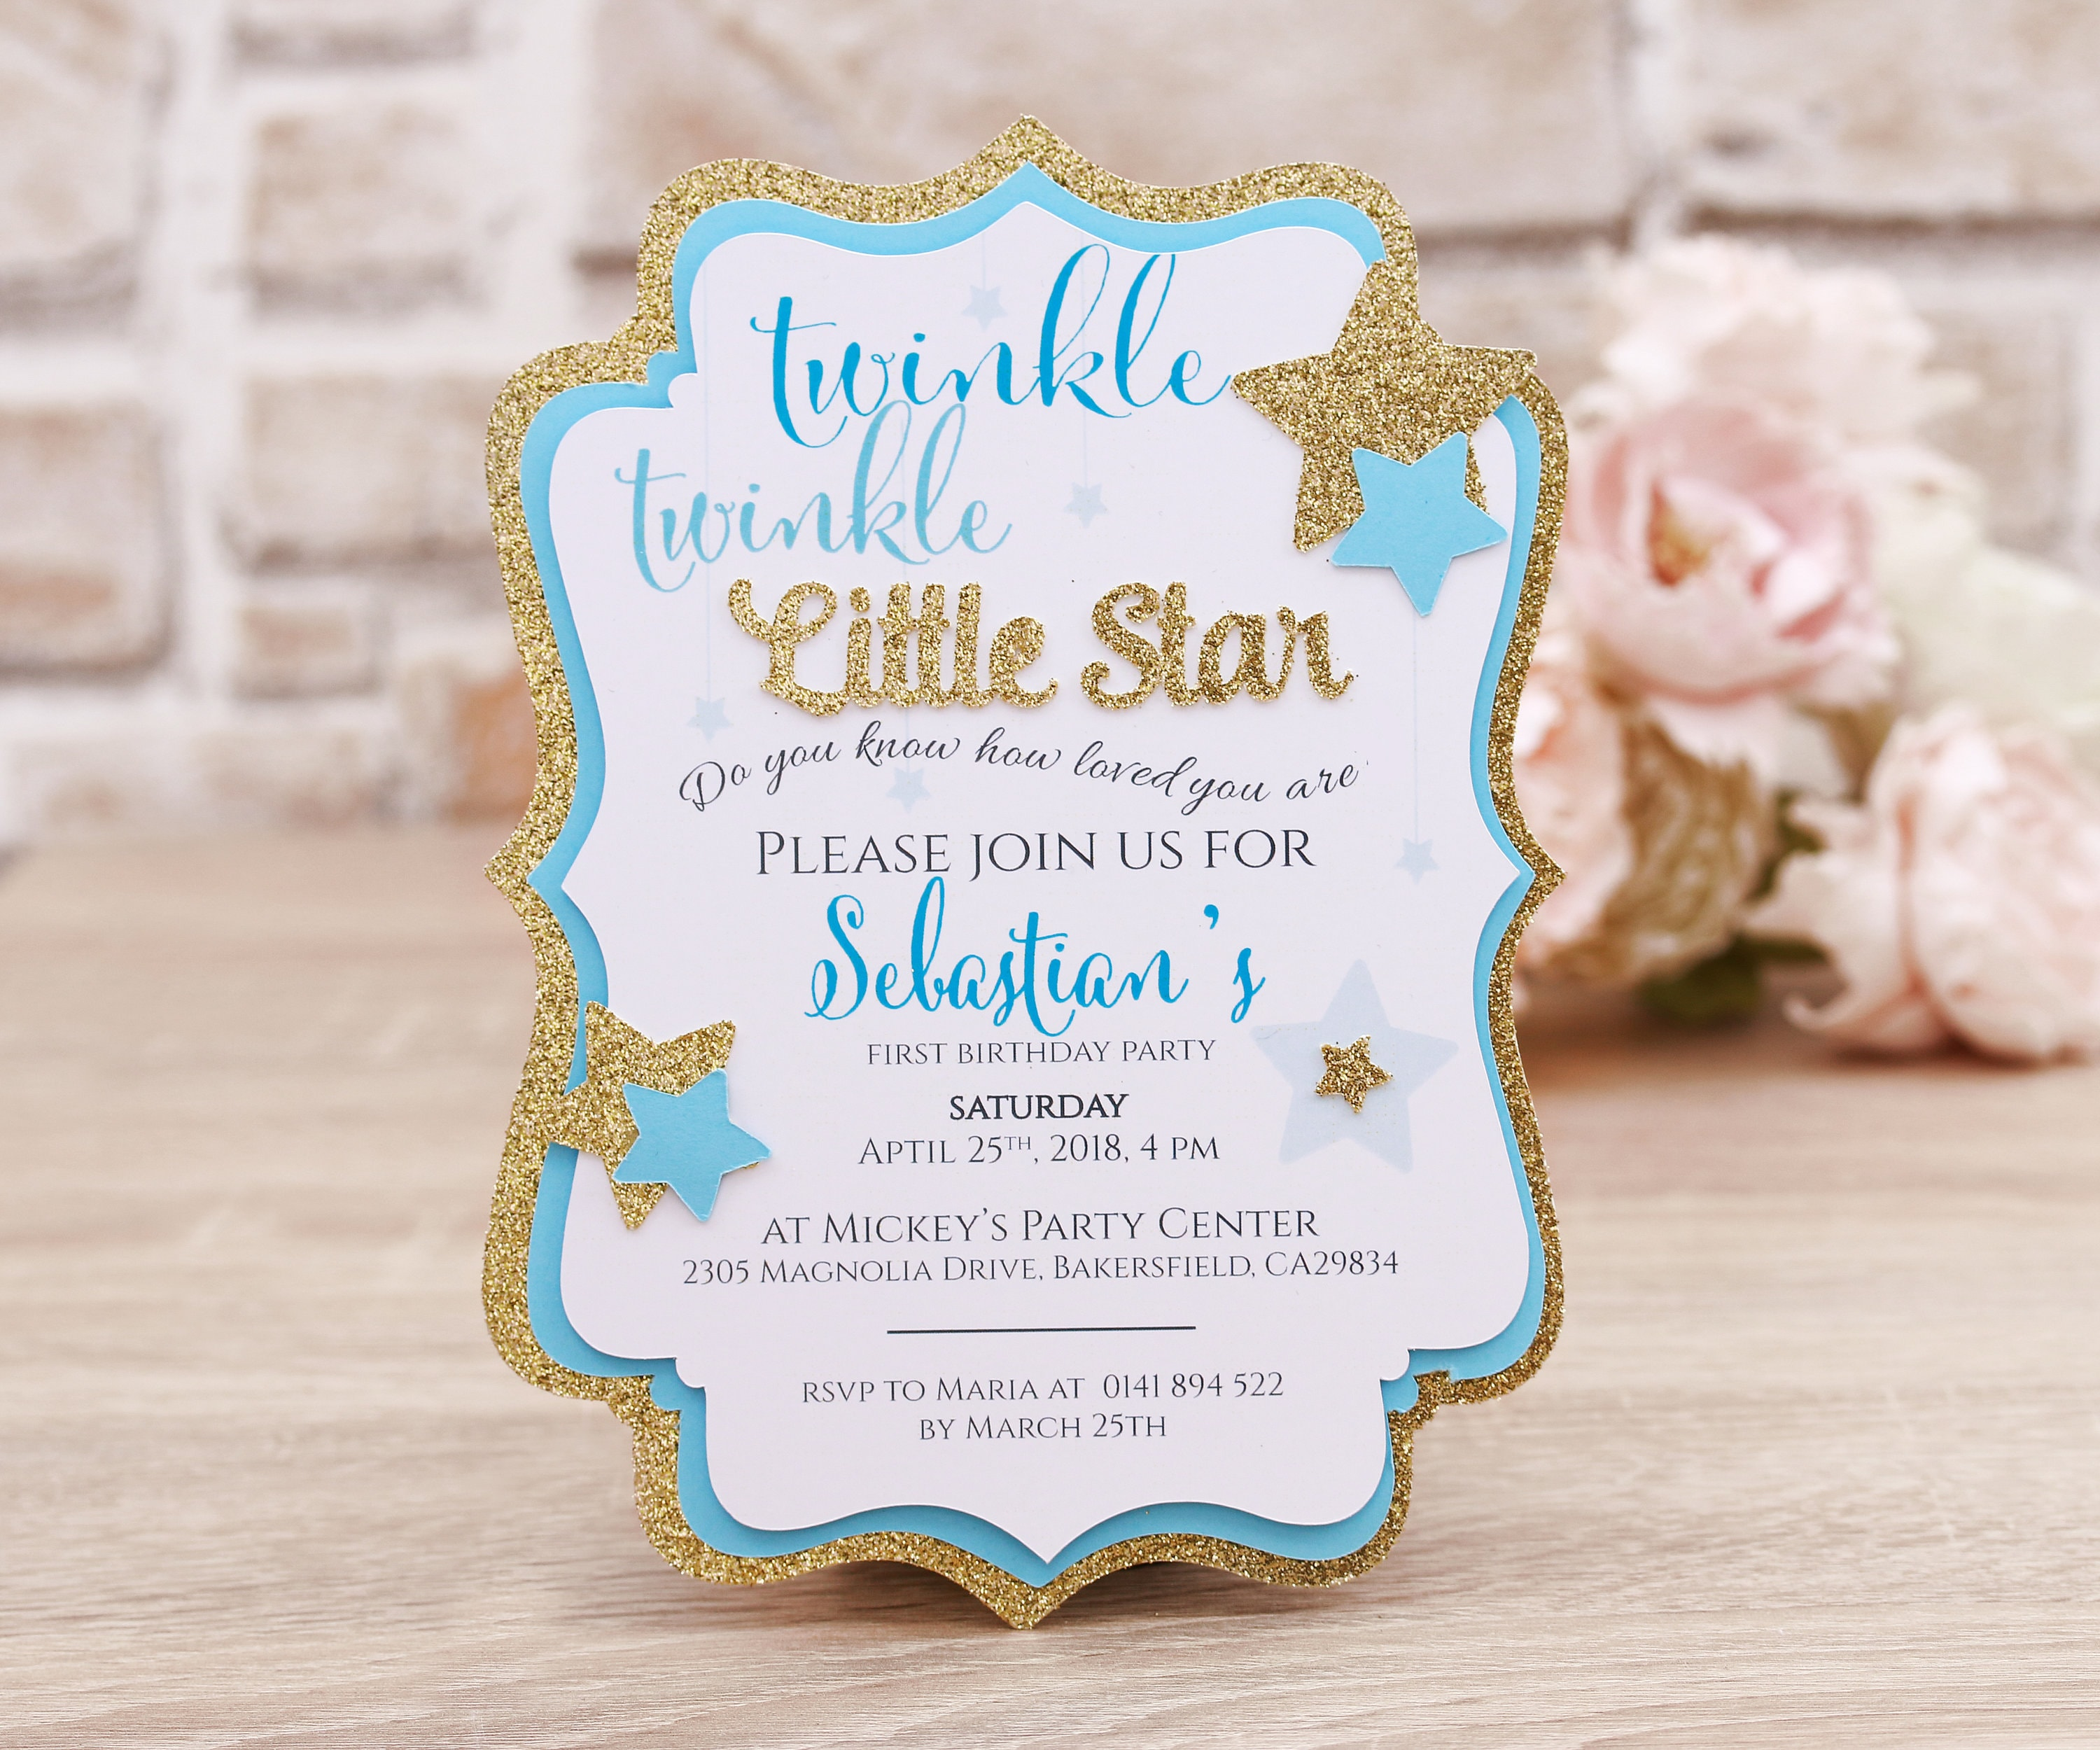 Twinkle Twinkle Little Star First Birthday Invitation Card | Etsy